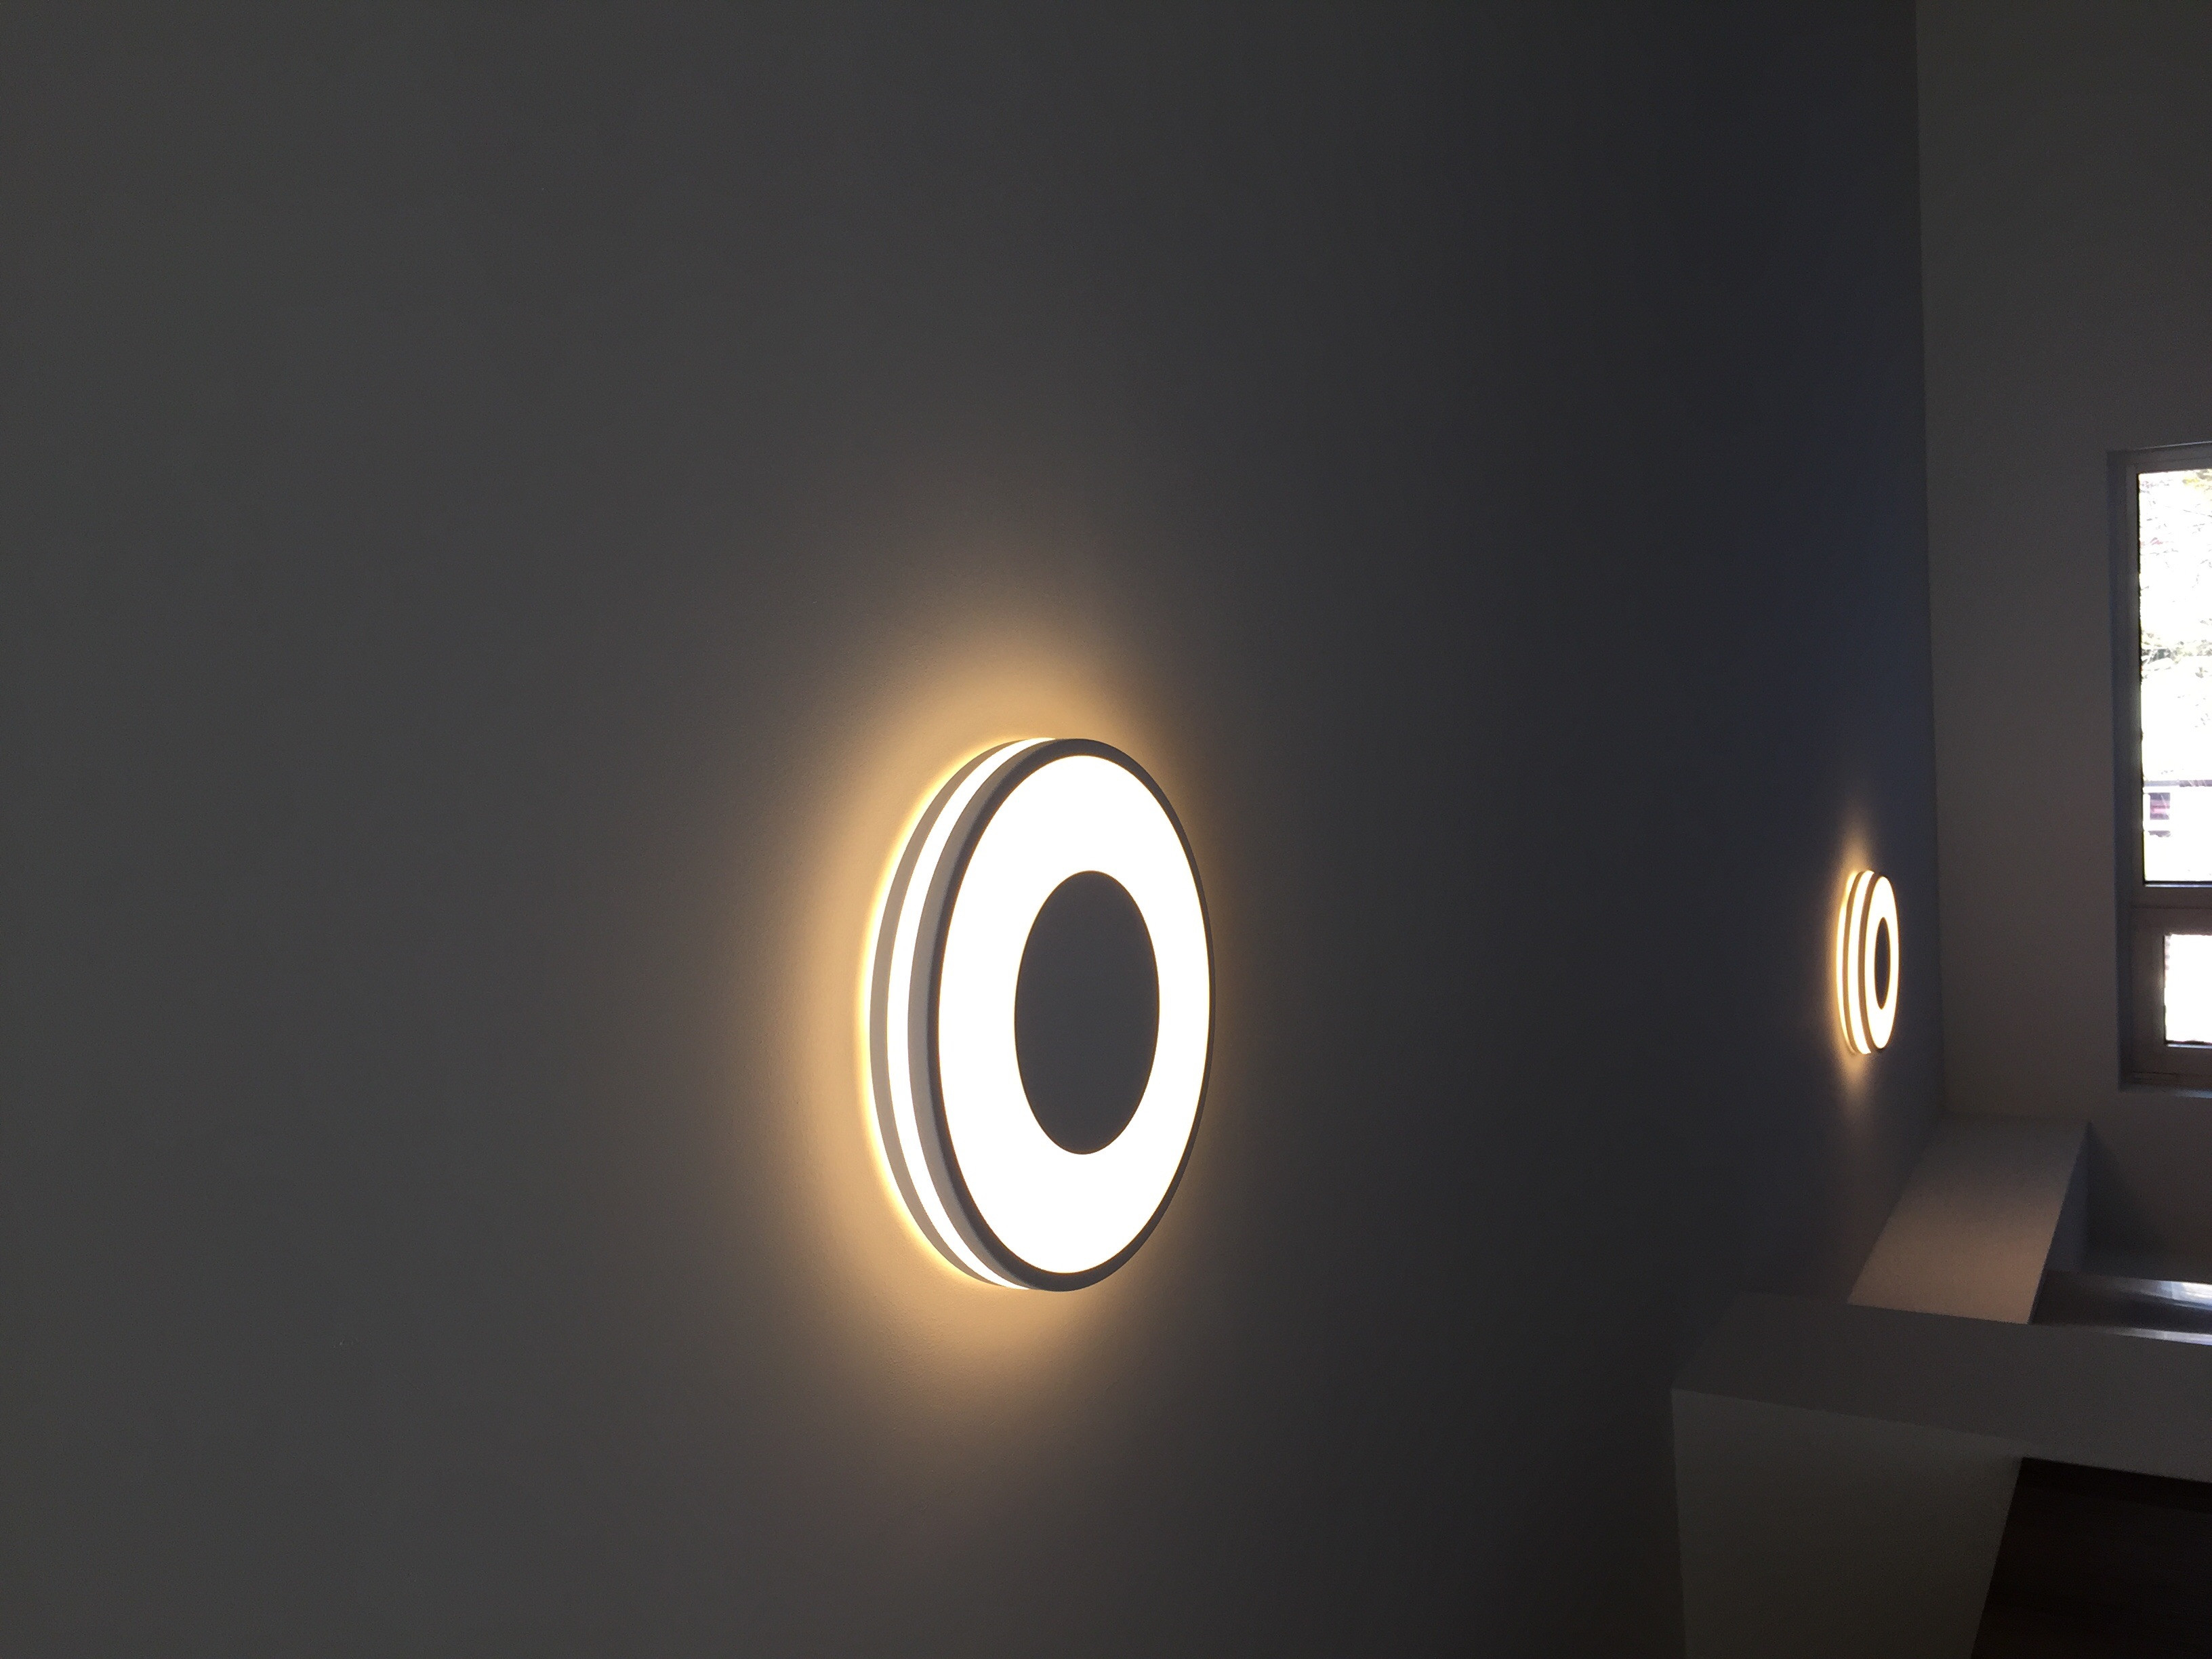 Hue Lampen Coolblue : Reviews over philips hue being plafondlamp wit coolblue voor